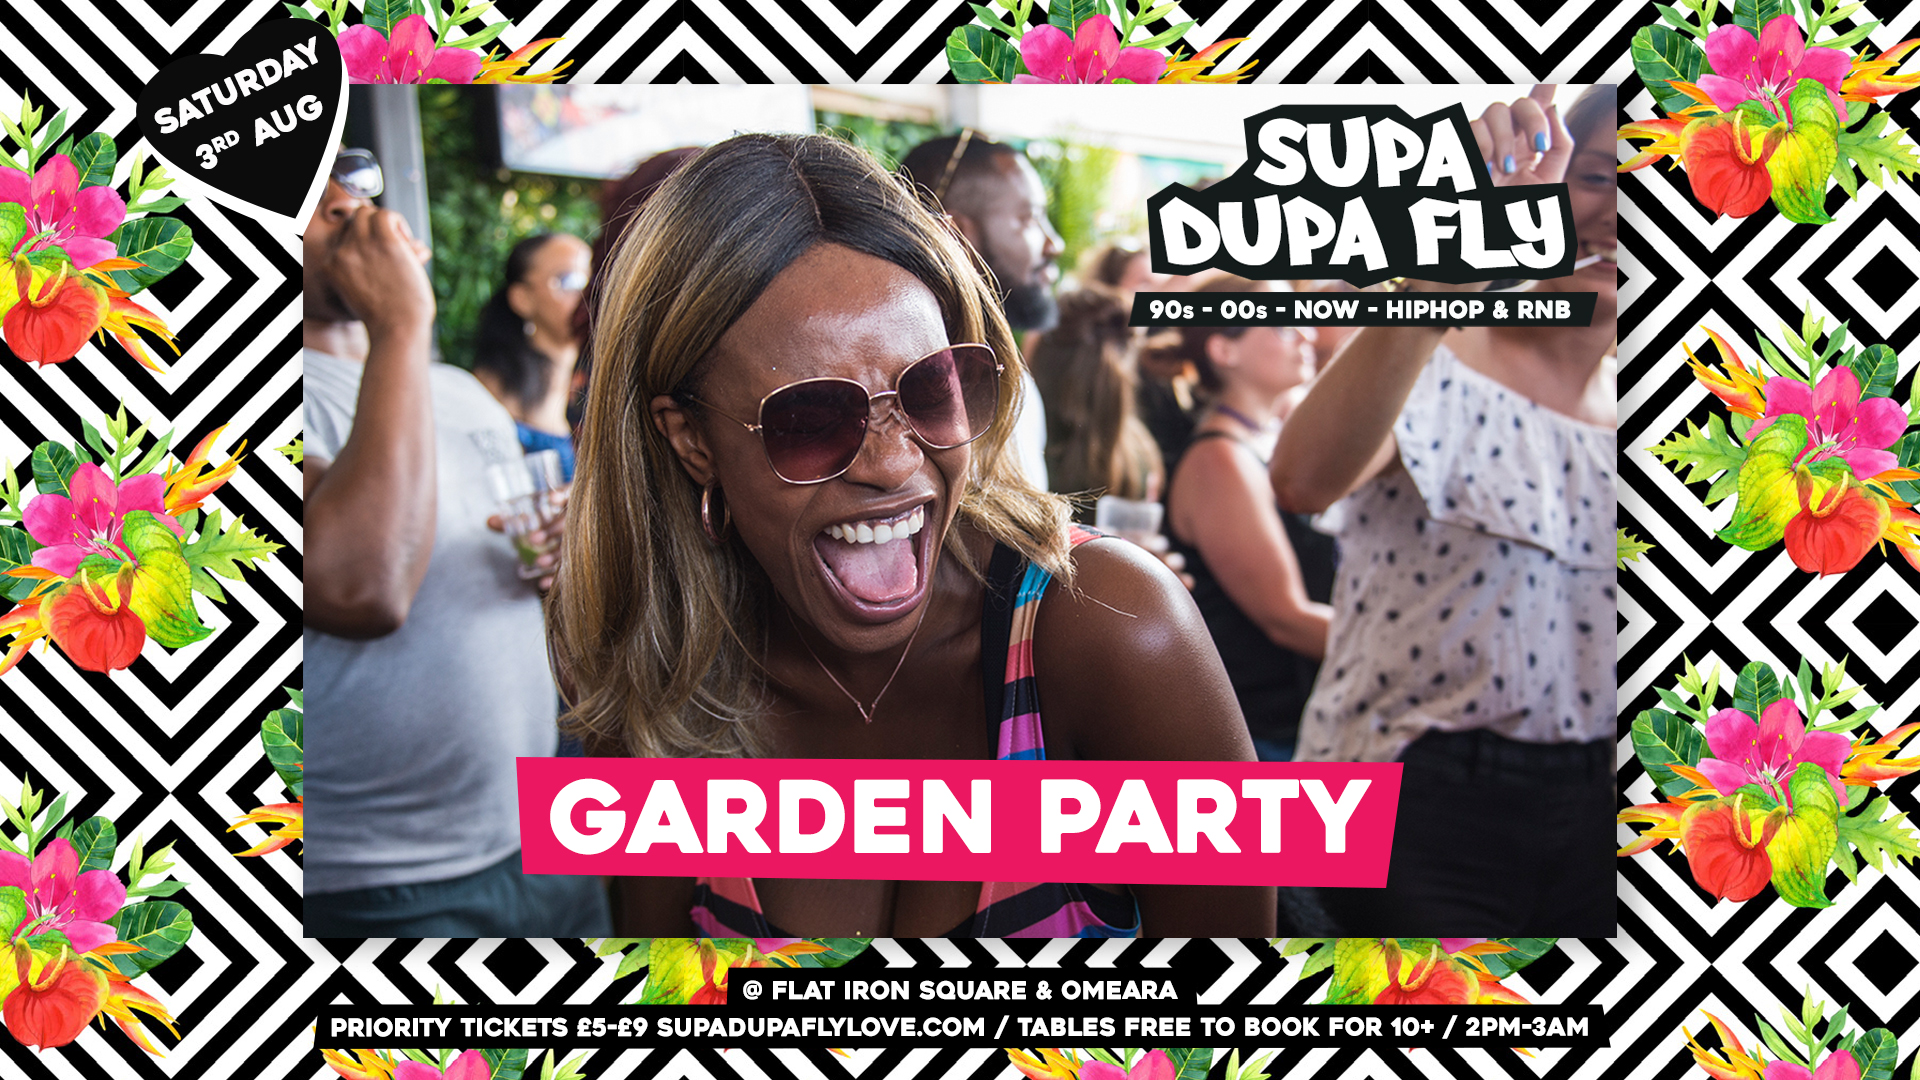 Supa Dupa Fly x Garden Party